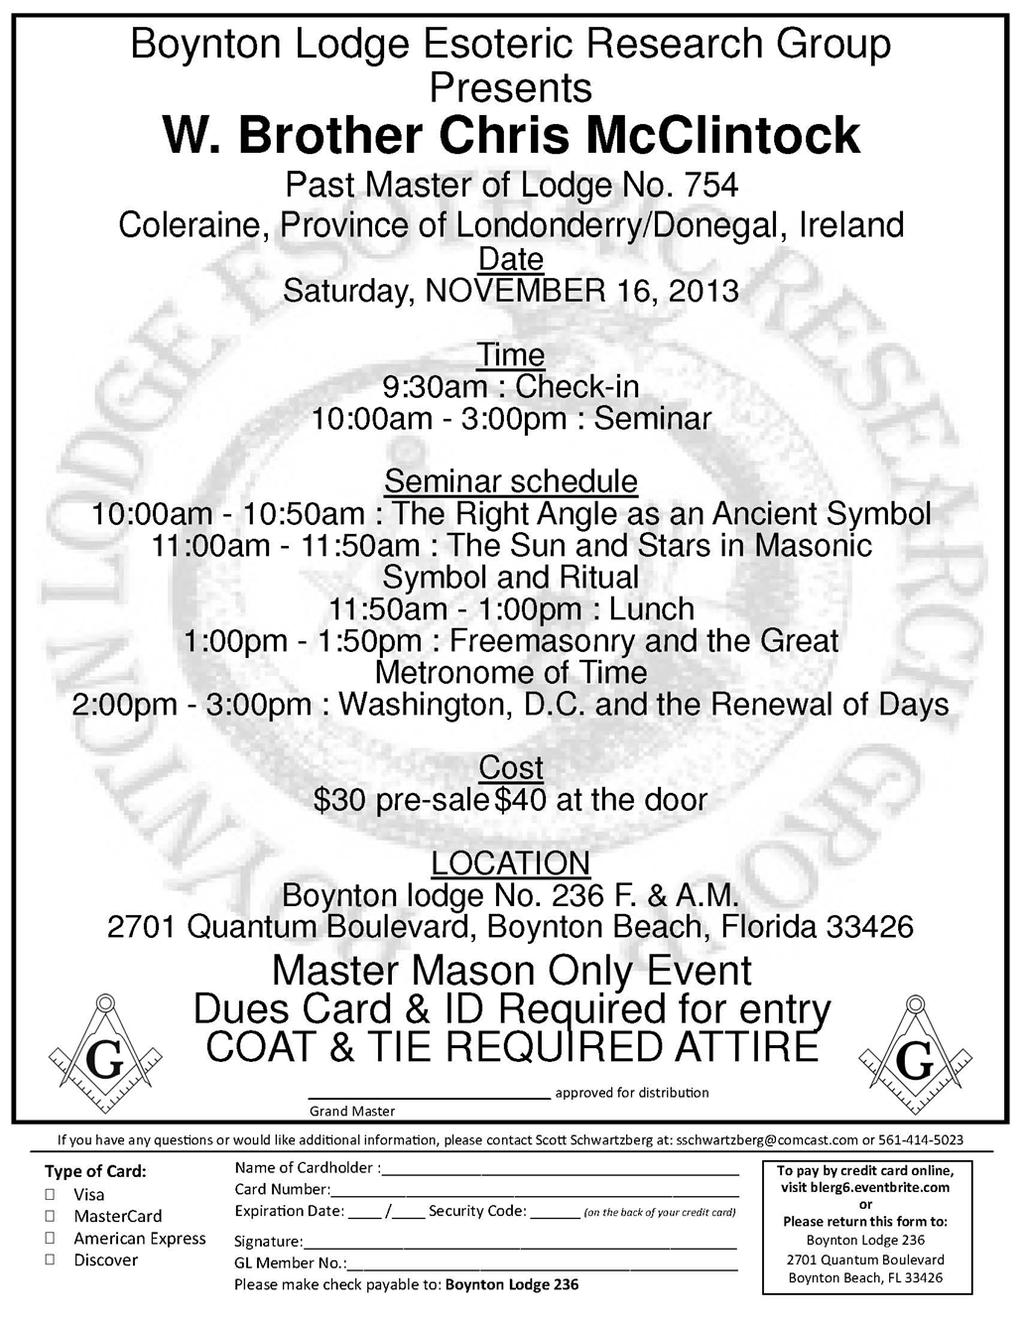 MASTERS AND WARDENS ASSOCIATION OF BROWARD COUNTY, FLORIDA